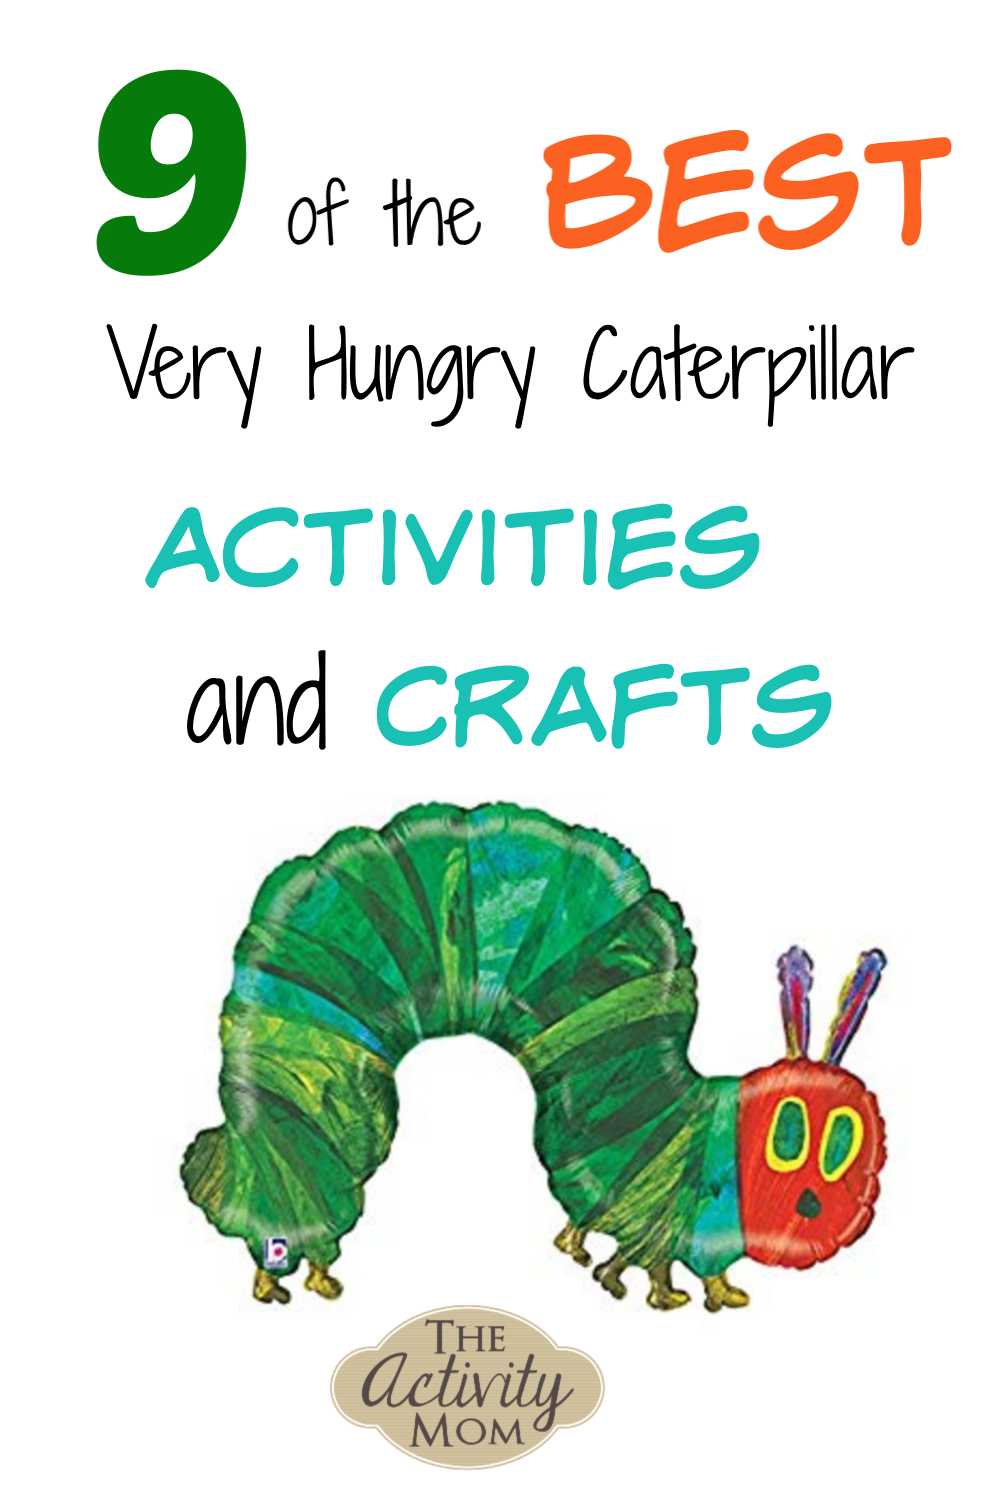 The Very Hungry Caterpillar Activities and Crafts for Kids